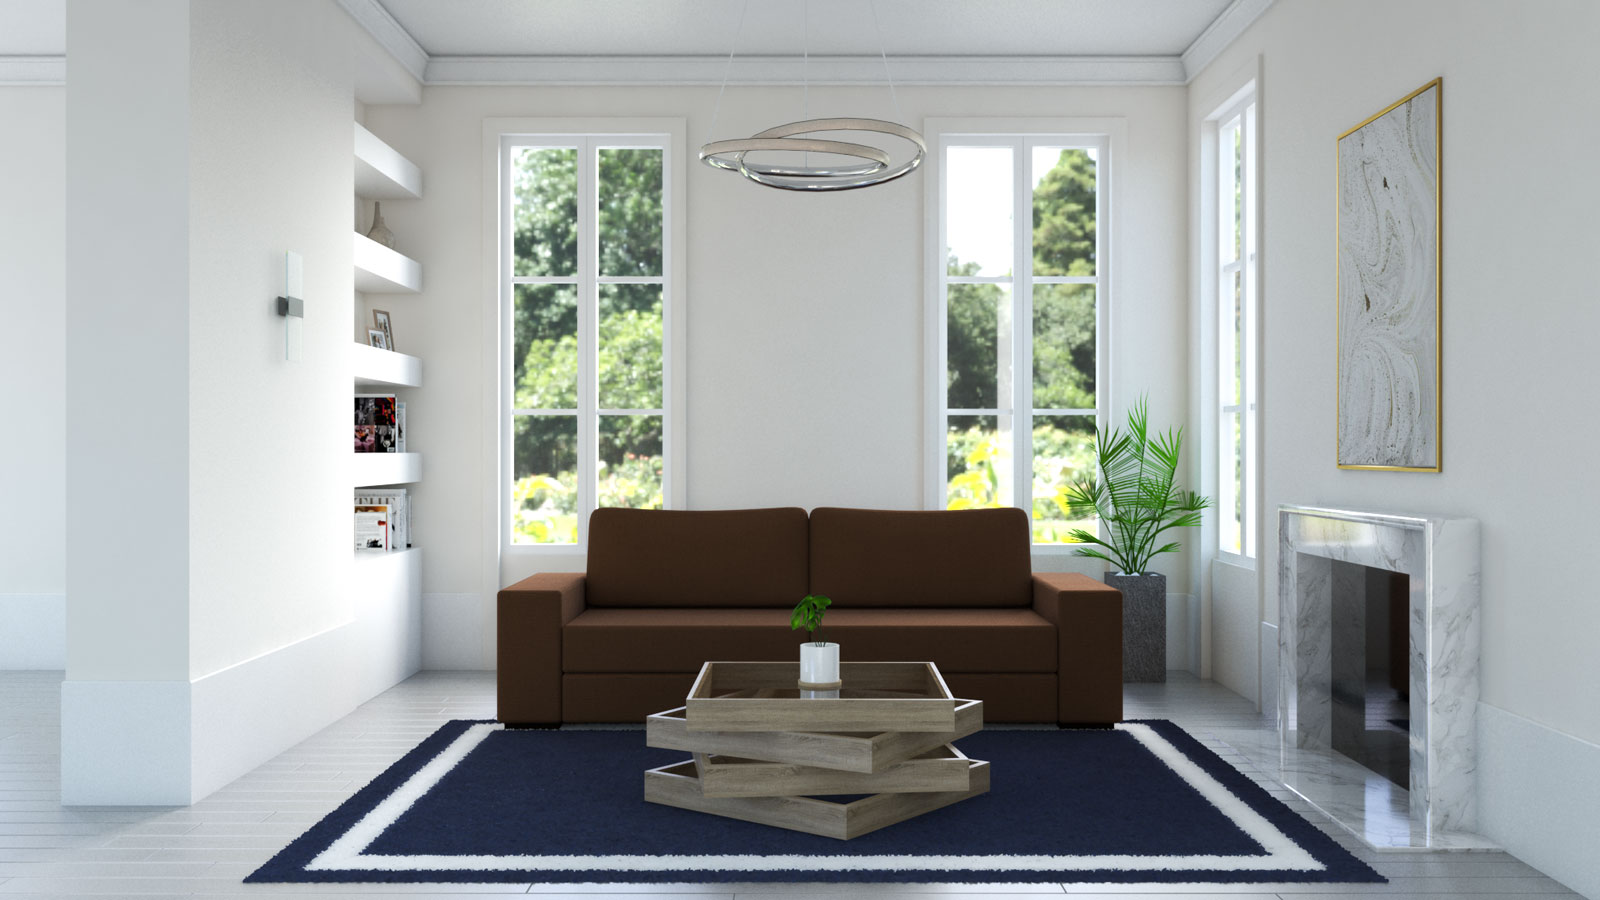 living room with navy blue rug and brown couch